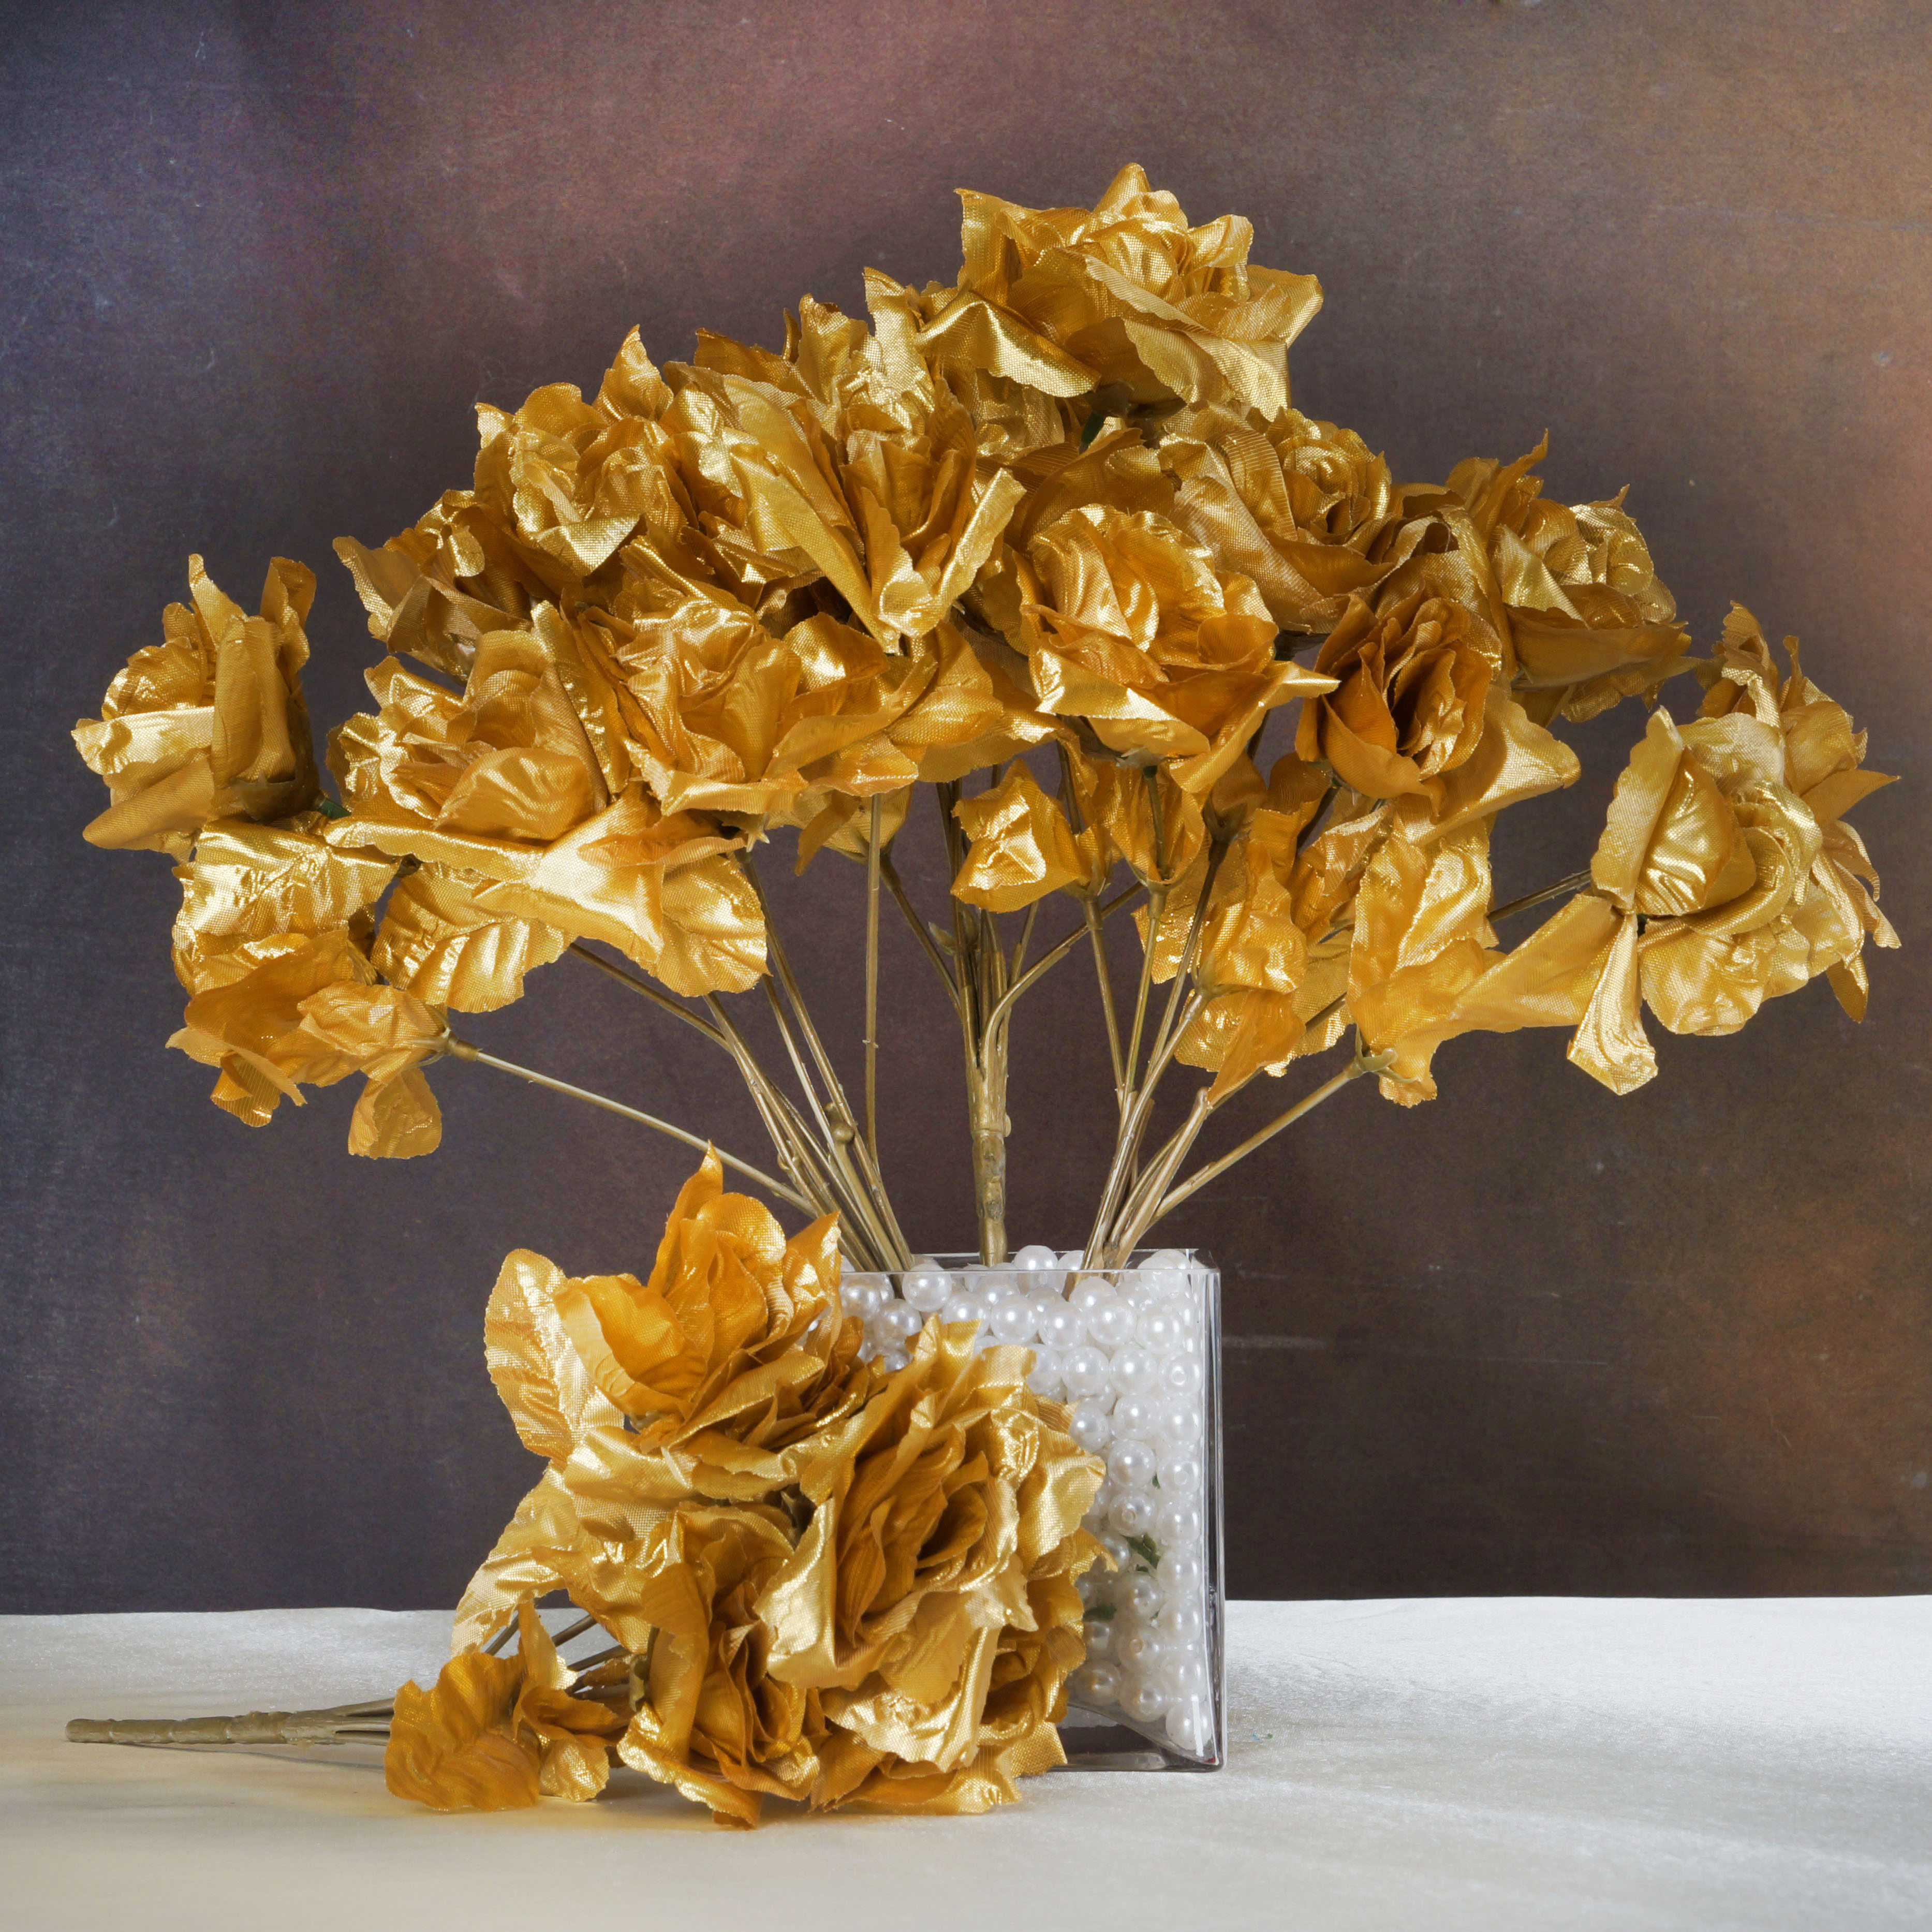 Gold Silk Flowers Wholesale Images - Flower Decoration Ideas